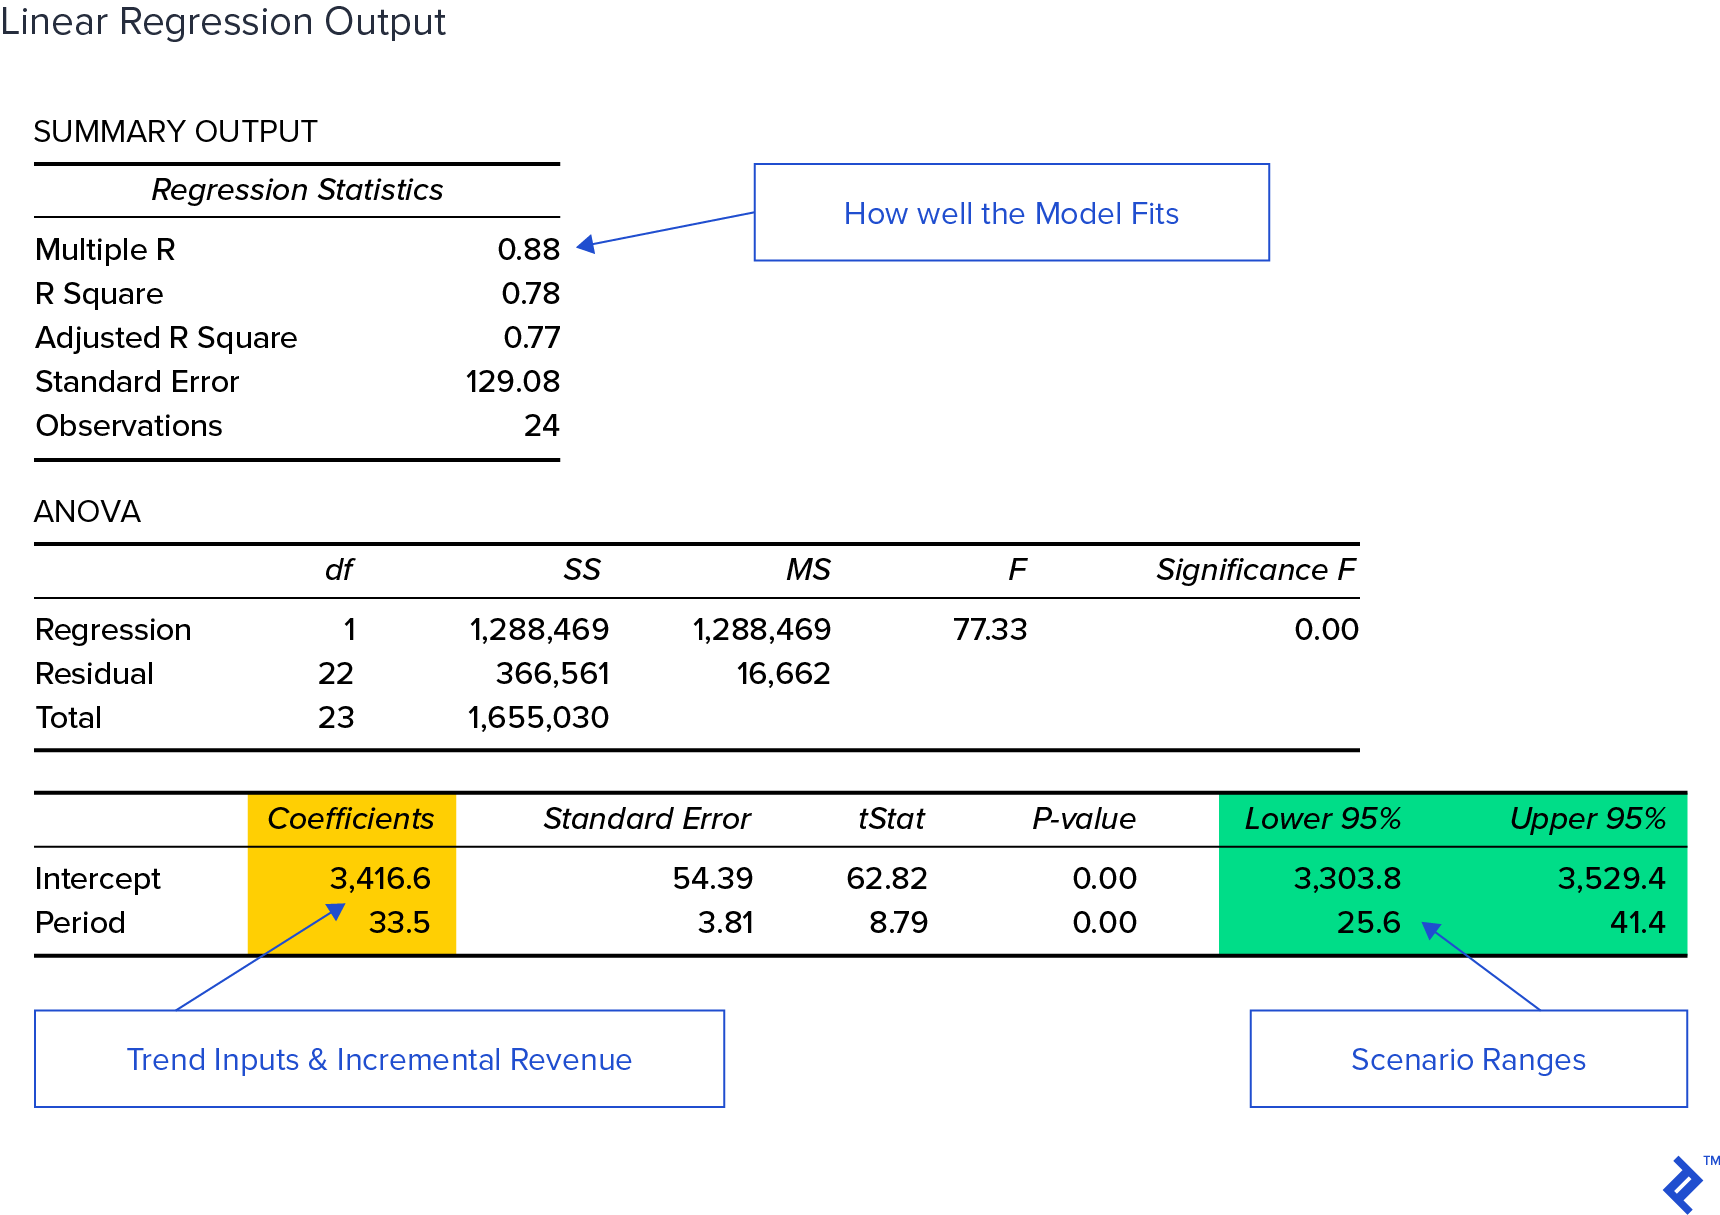 regression output in the budgeting process